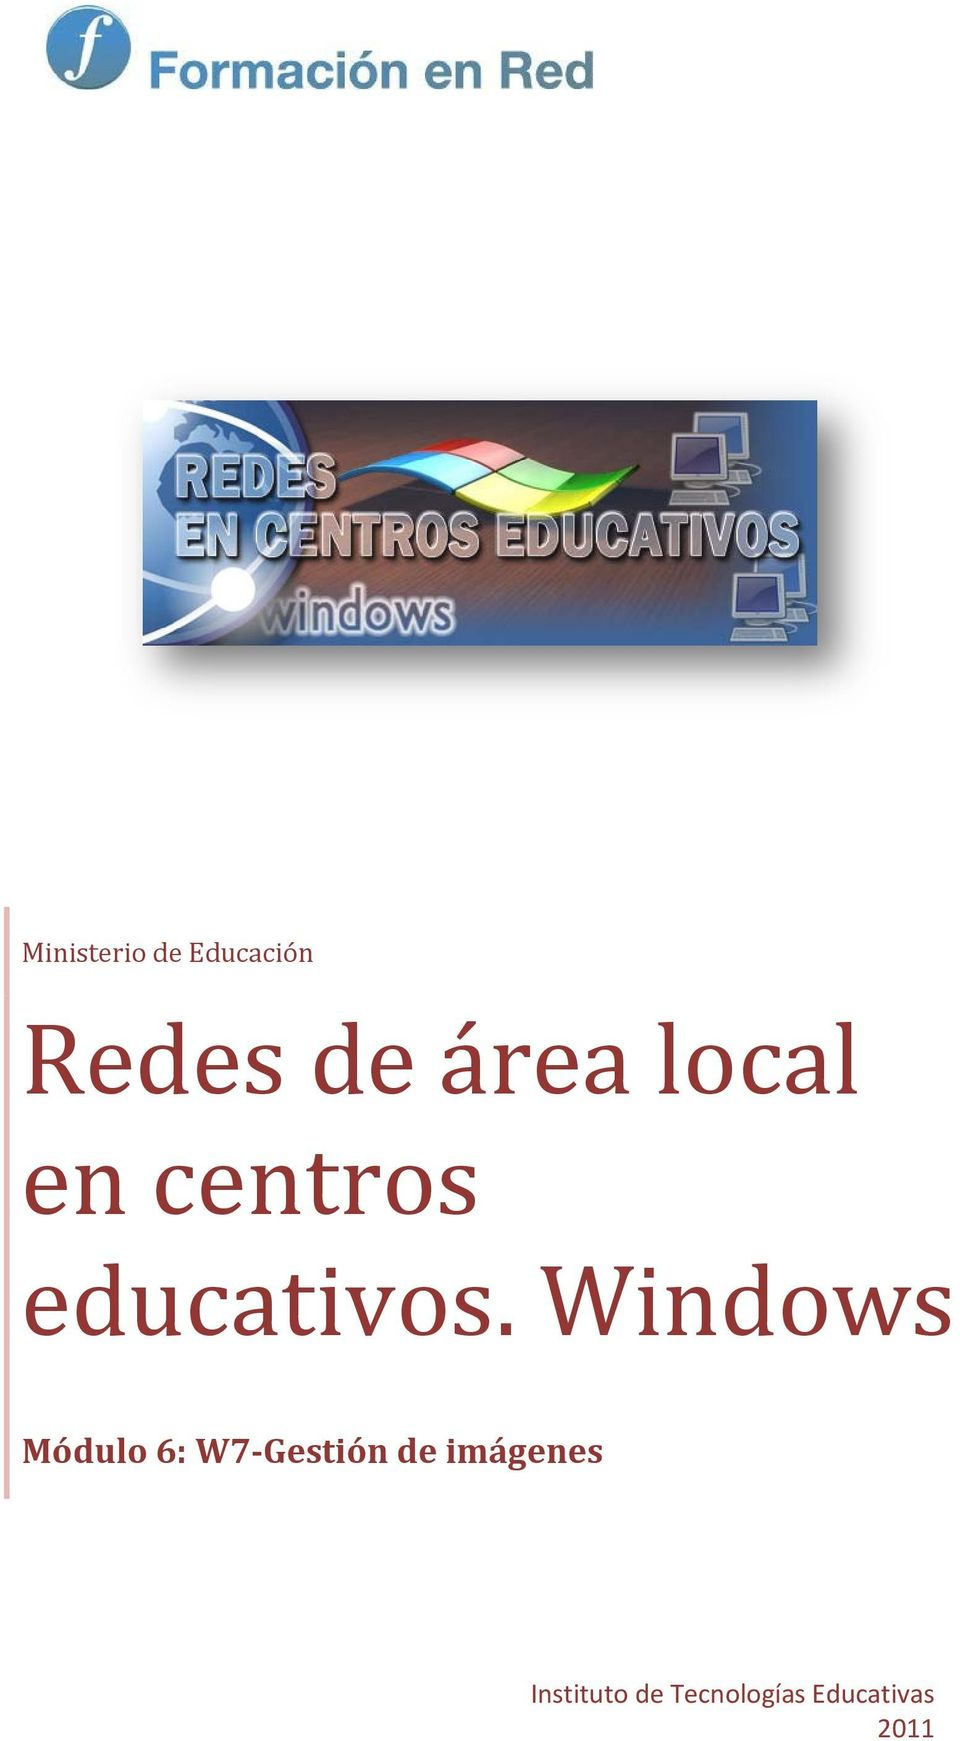 Windows Módulo 6: W7-Gestión de